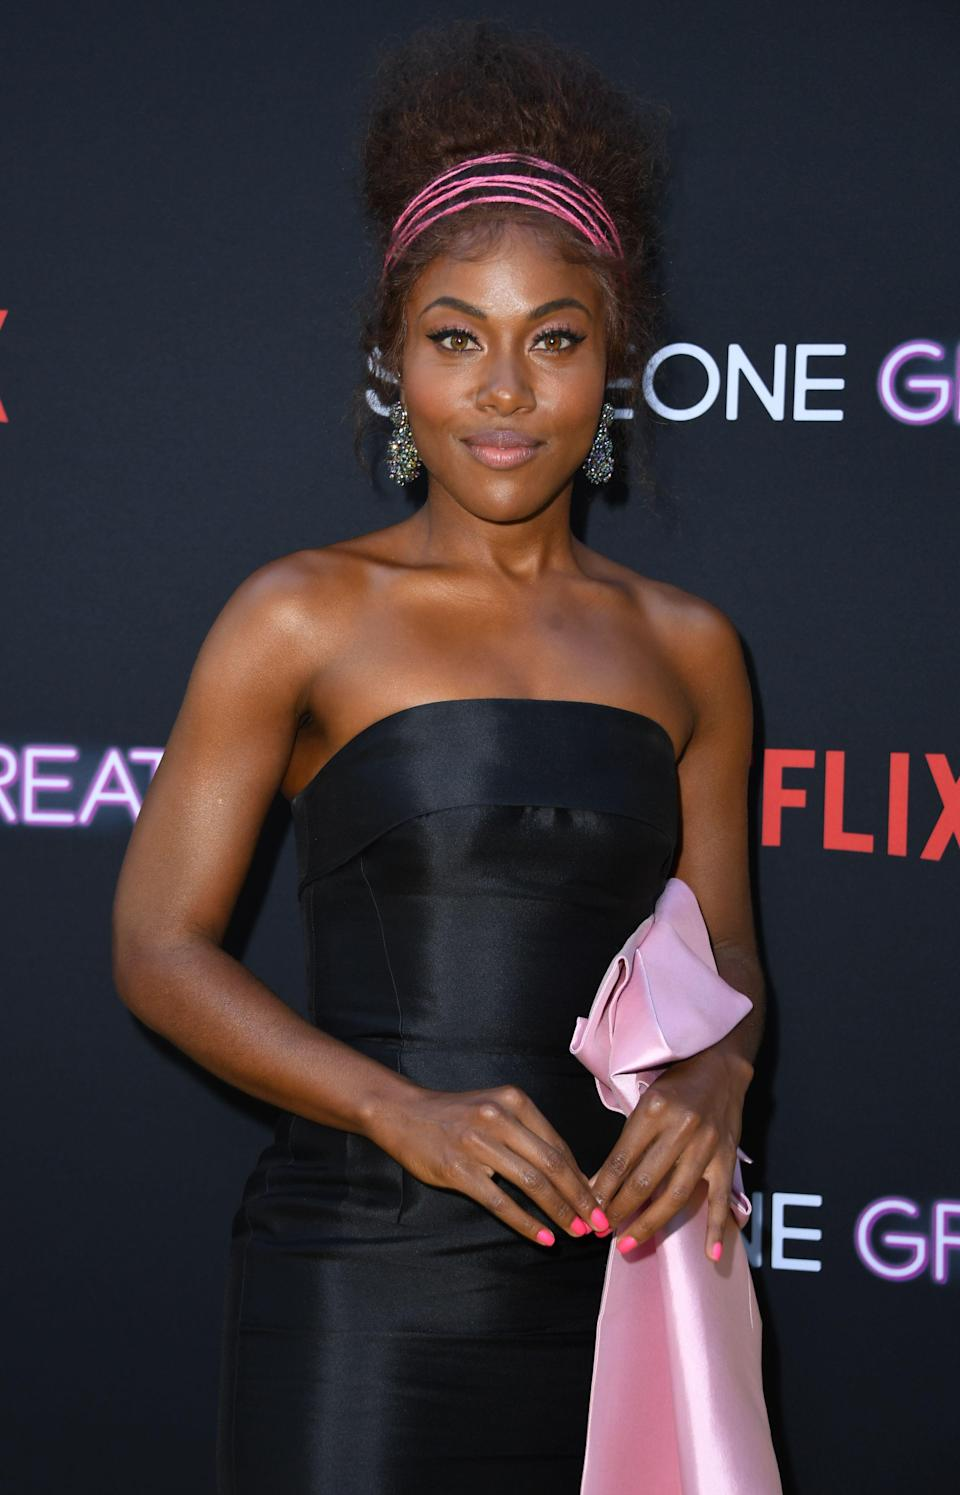 """<p>There's a level of internalized self-hate that some Black women have experienced with their hair. Whether it was having their hair labeled """"bad"""" growing up or not feeling beautiful compared to society's ideal of beauty. DeWanda Wise, who plays Nola in Netflix's <em>She's Gotta Have It</em>, explains the pain that's felt when a stylist reinforces the toxic belief that Black hair is less than.</p> <p>It's not just someone """"not being able to do your hair,"""" <a href=""""https://apnews.com/298c0720f9594d05aeffae26802c7ac6"""" rel=""""nofollow noopener"""" target=""""_blank"""" data-ylk=""""slk:she said"""" class=""""link rapid-noclick-resp"""">she said</a>. """"It's people touching this texture with a certain level of trepidation and disgust.""""</p>"""